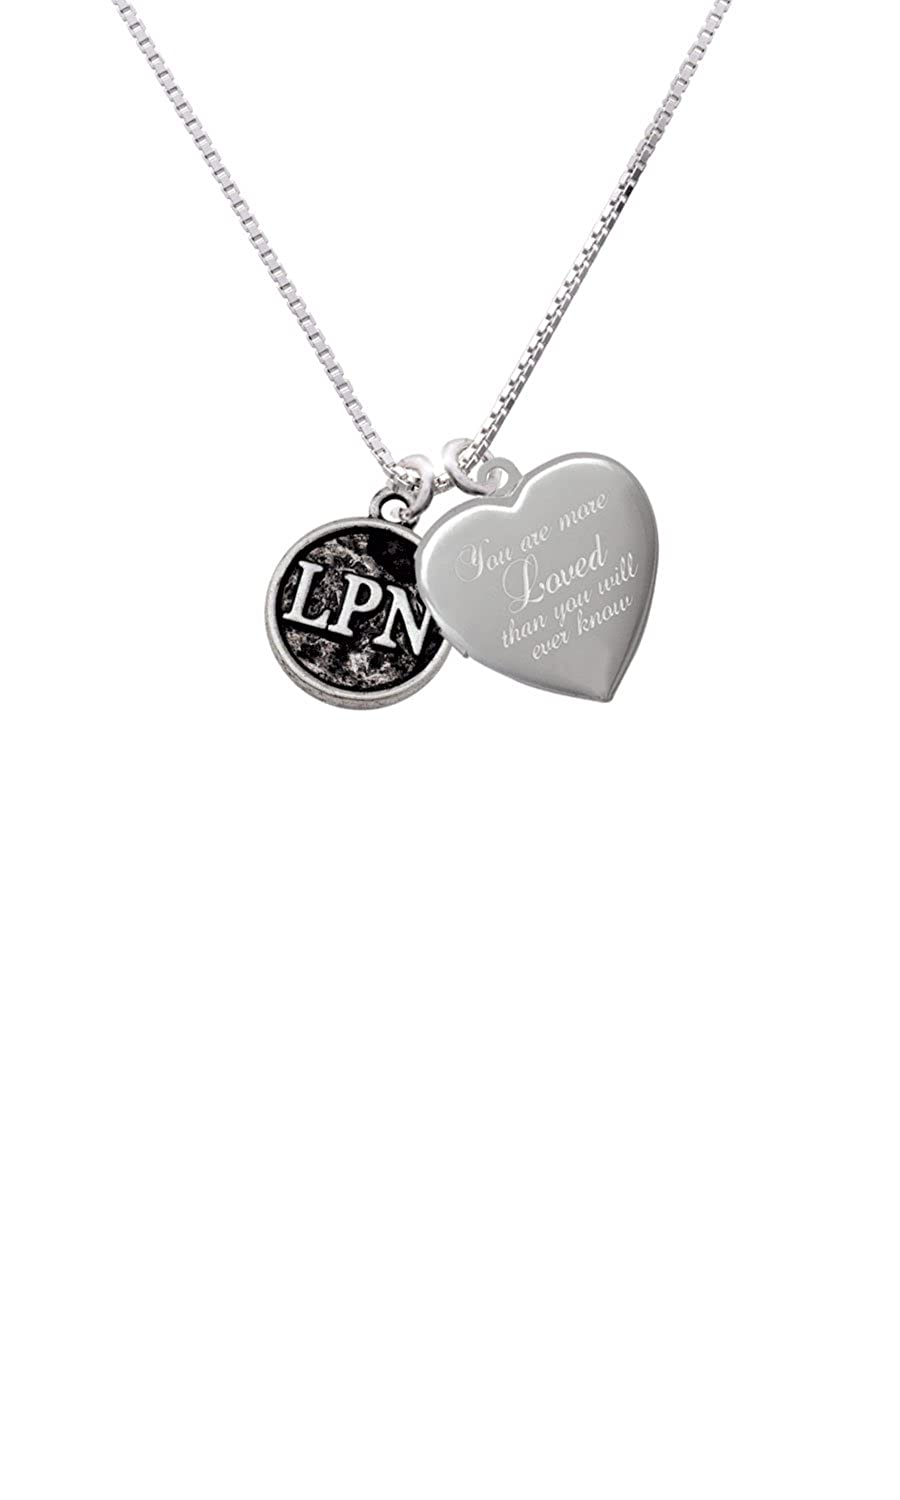 Nurse Caduceus Seal LPN Custom Engraved You are more Loved Heart Locket Necklace